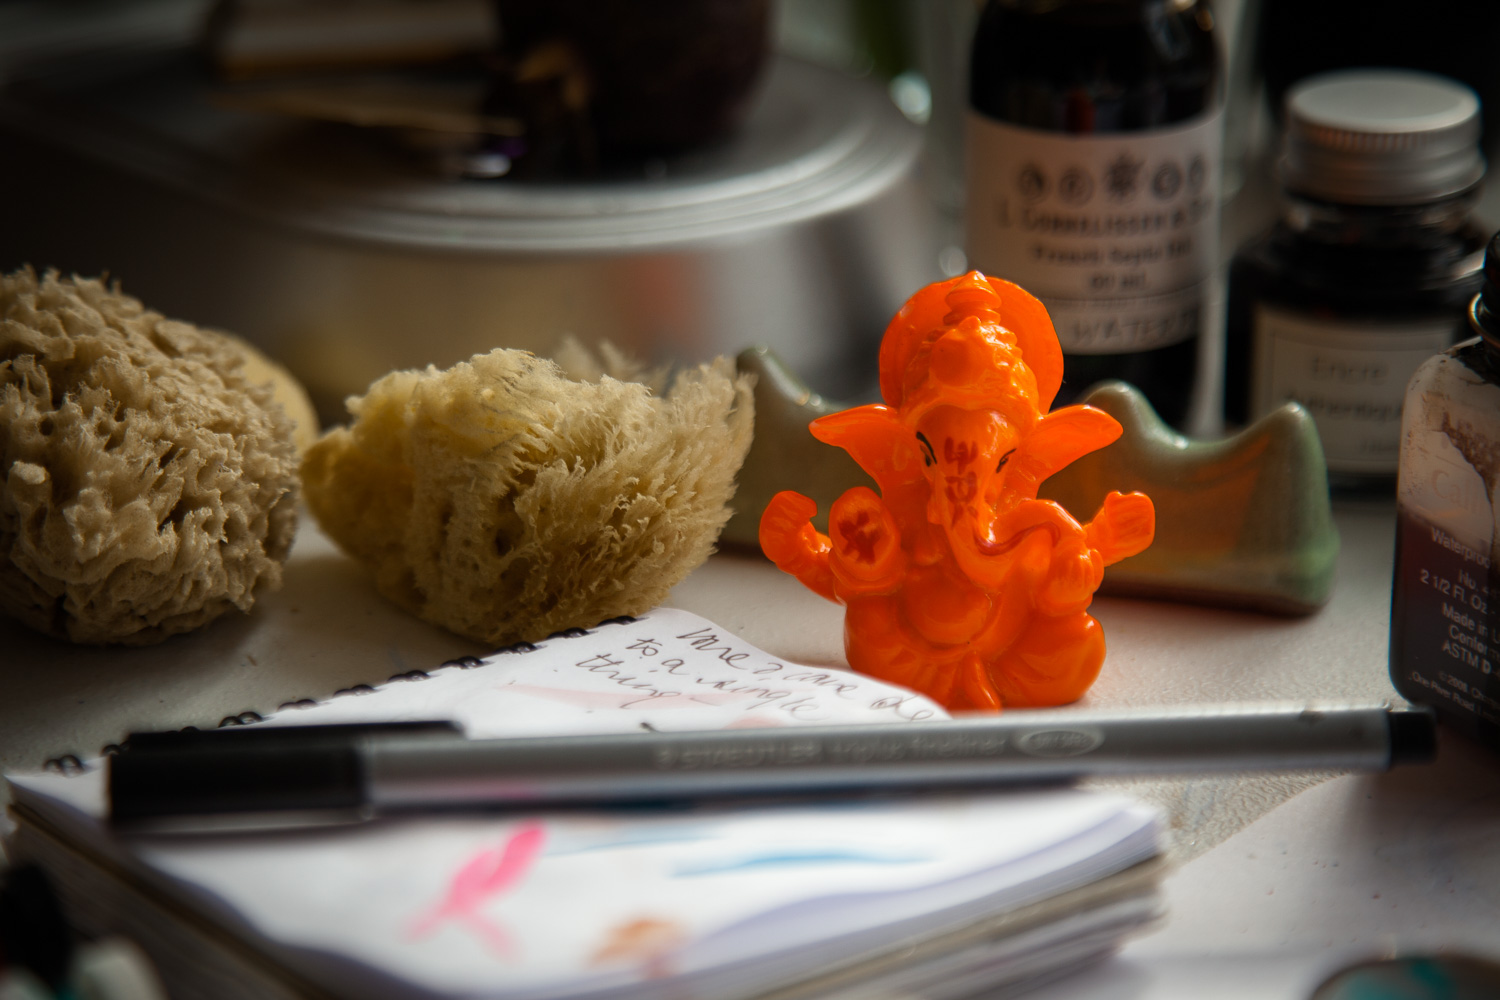 Working day begins with an offering prayer, thoughts and notes on a cluttered desk, ideas spill out amongst the chaos.